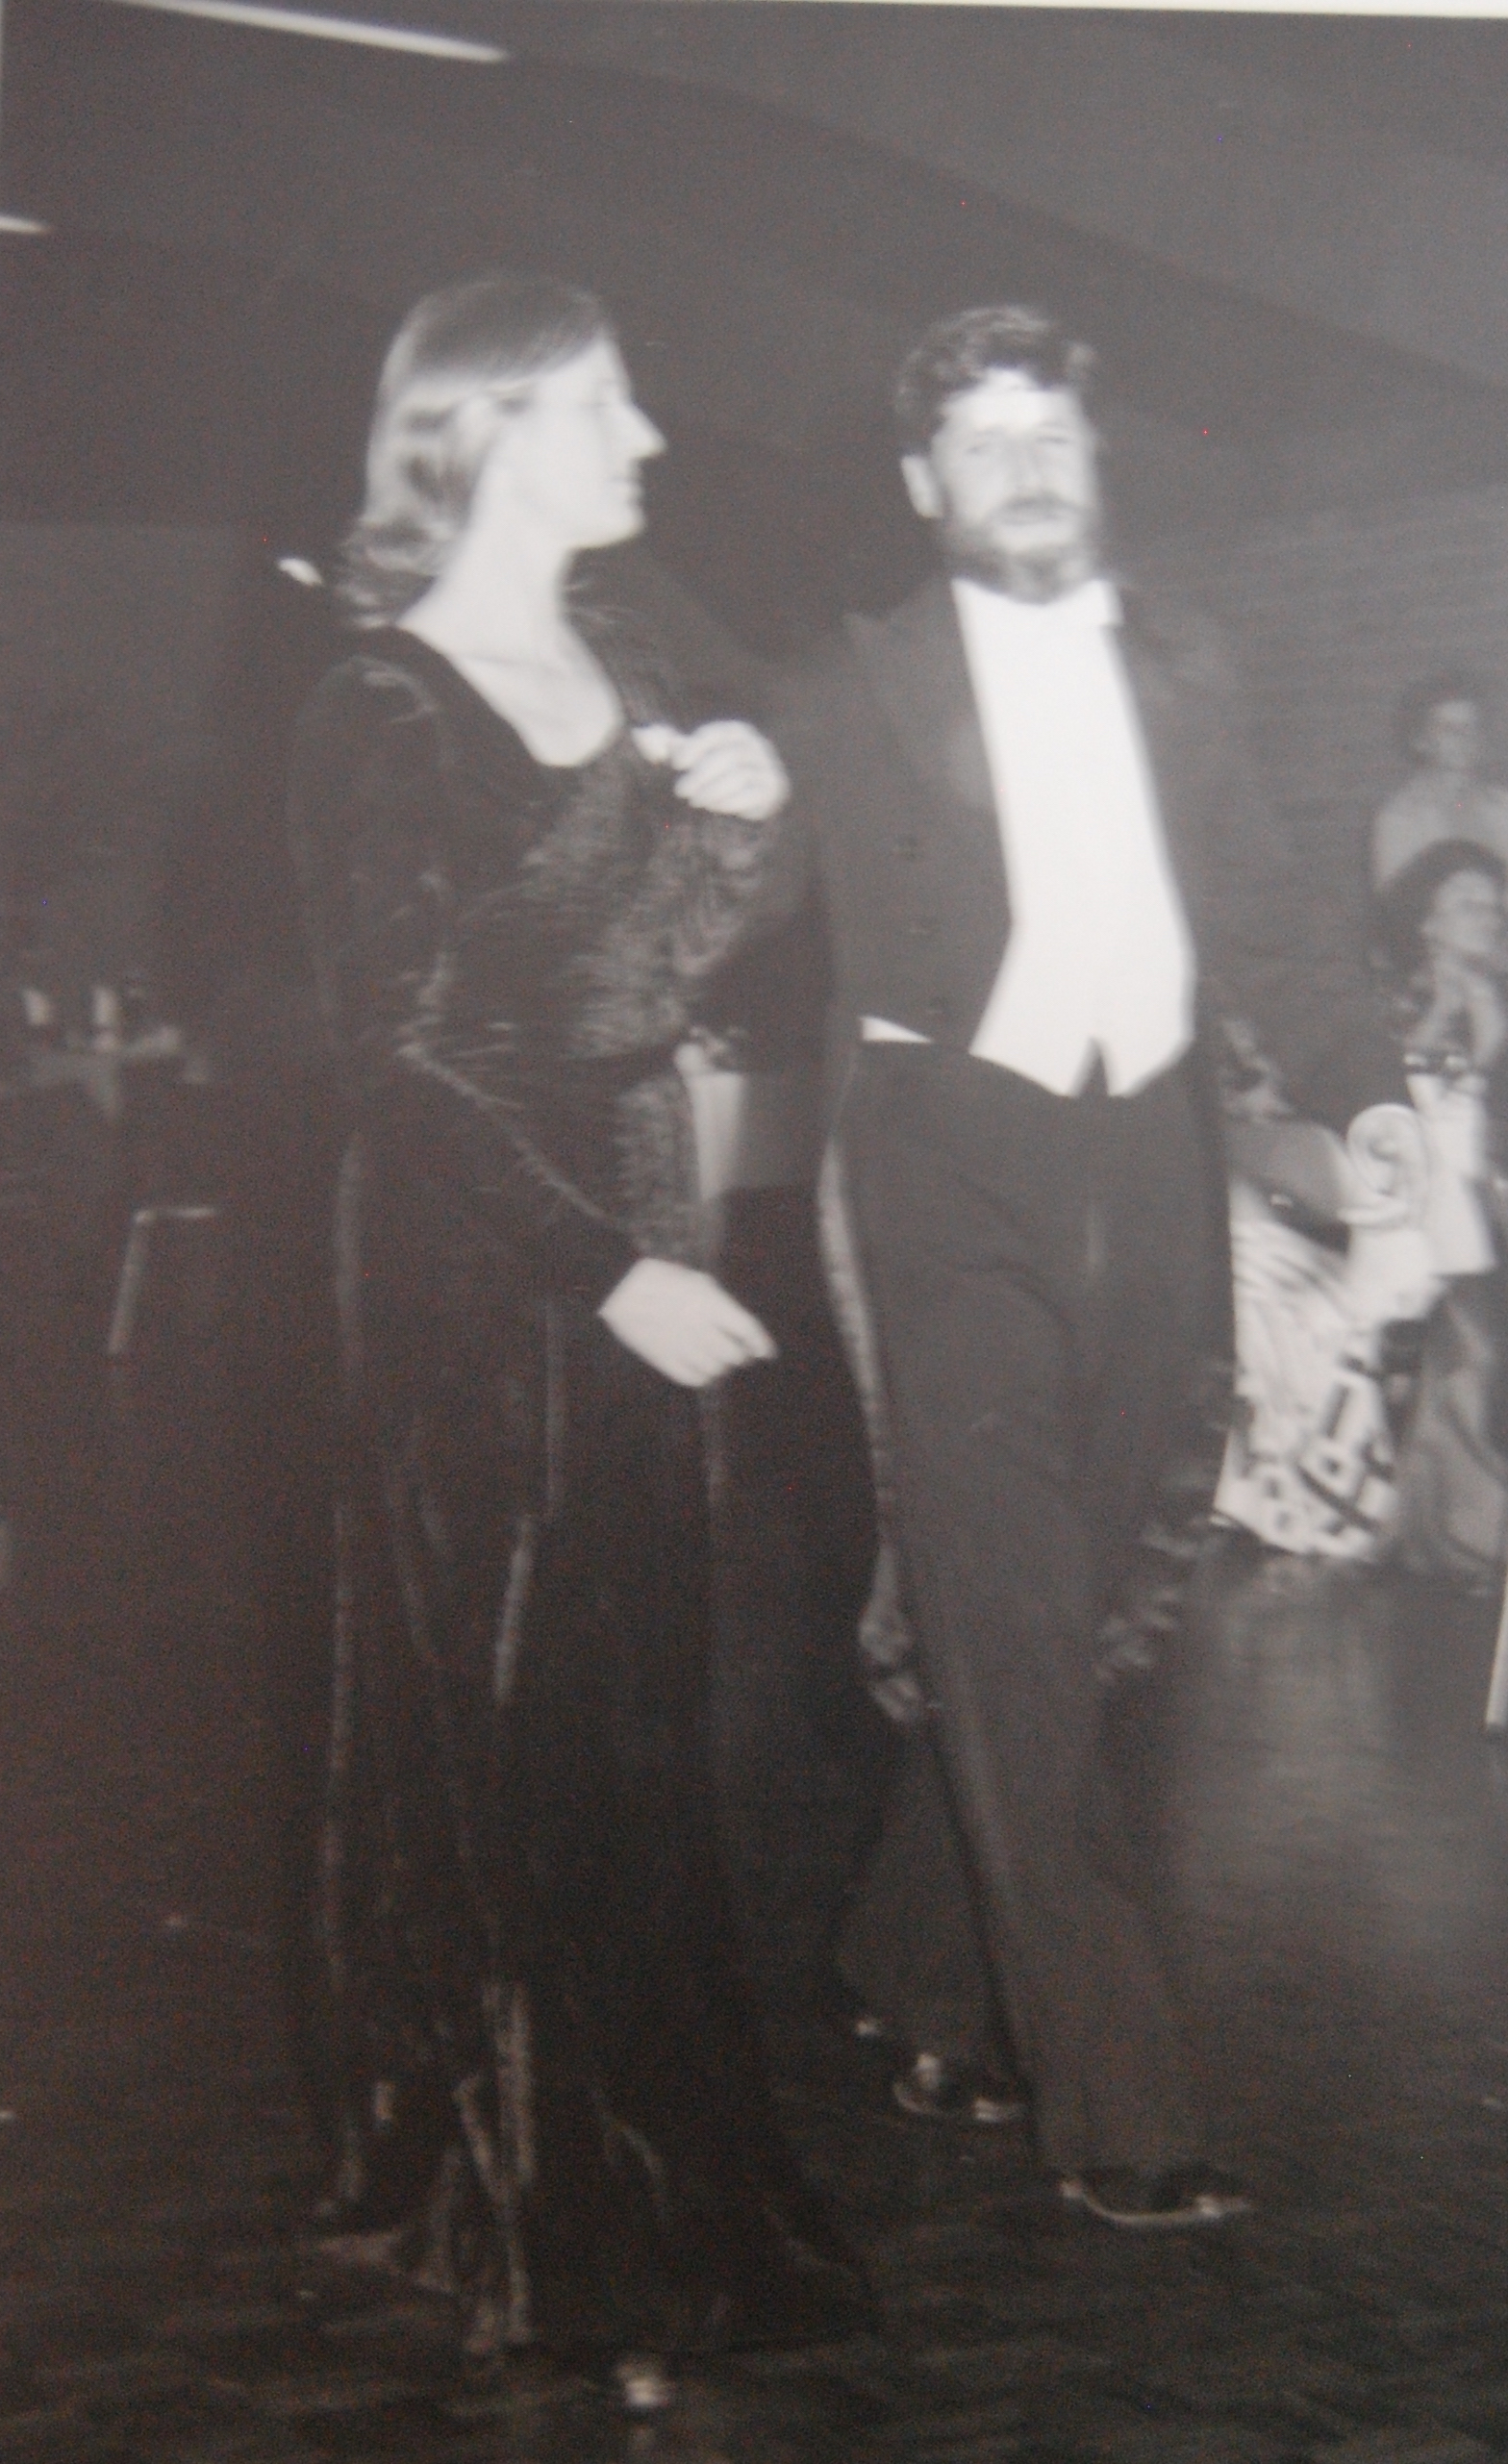 David and Prue Stitt at Forbes Show Ball. David was an entrant in the Beard Growing Championship.